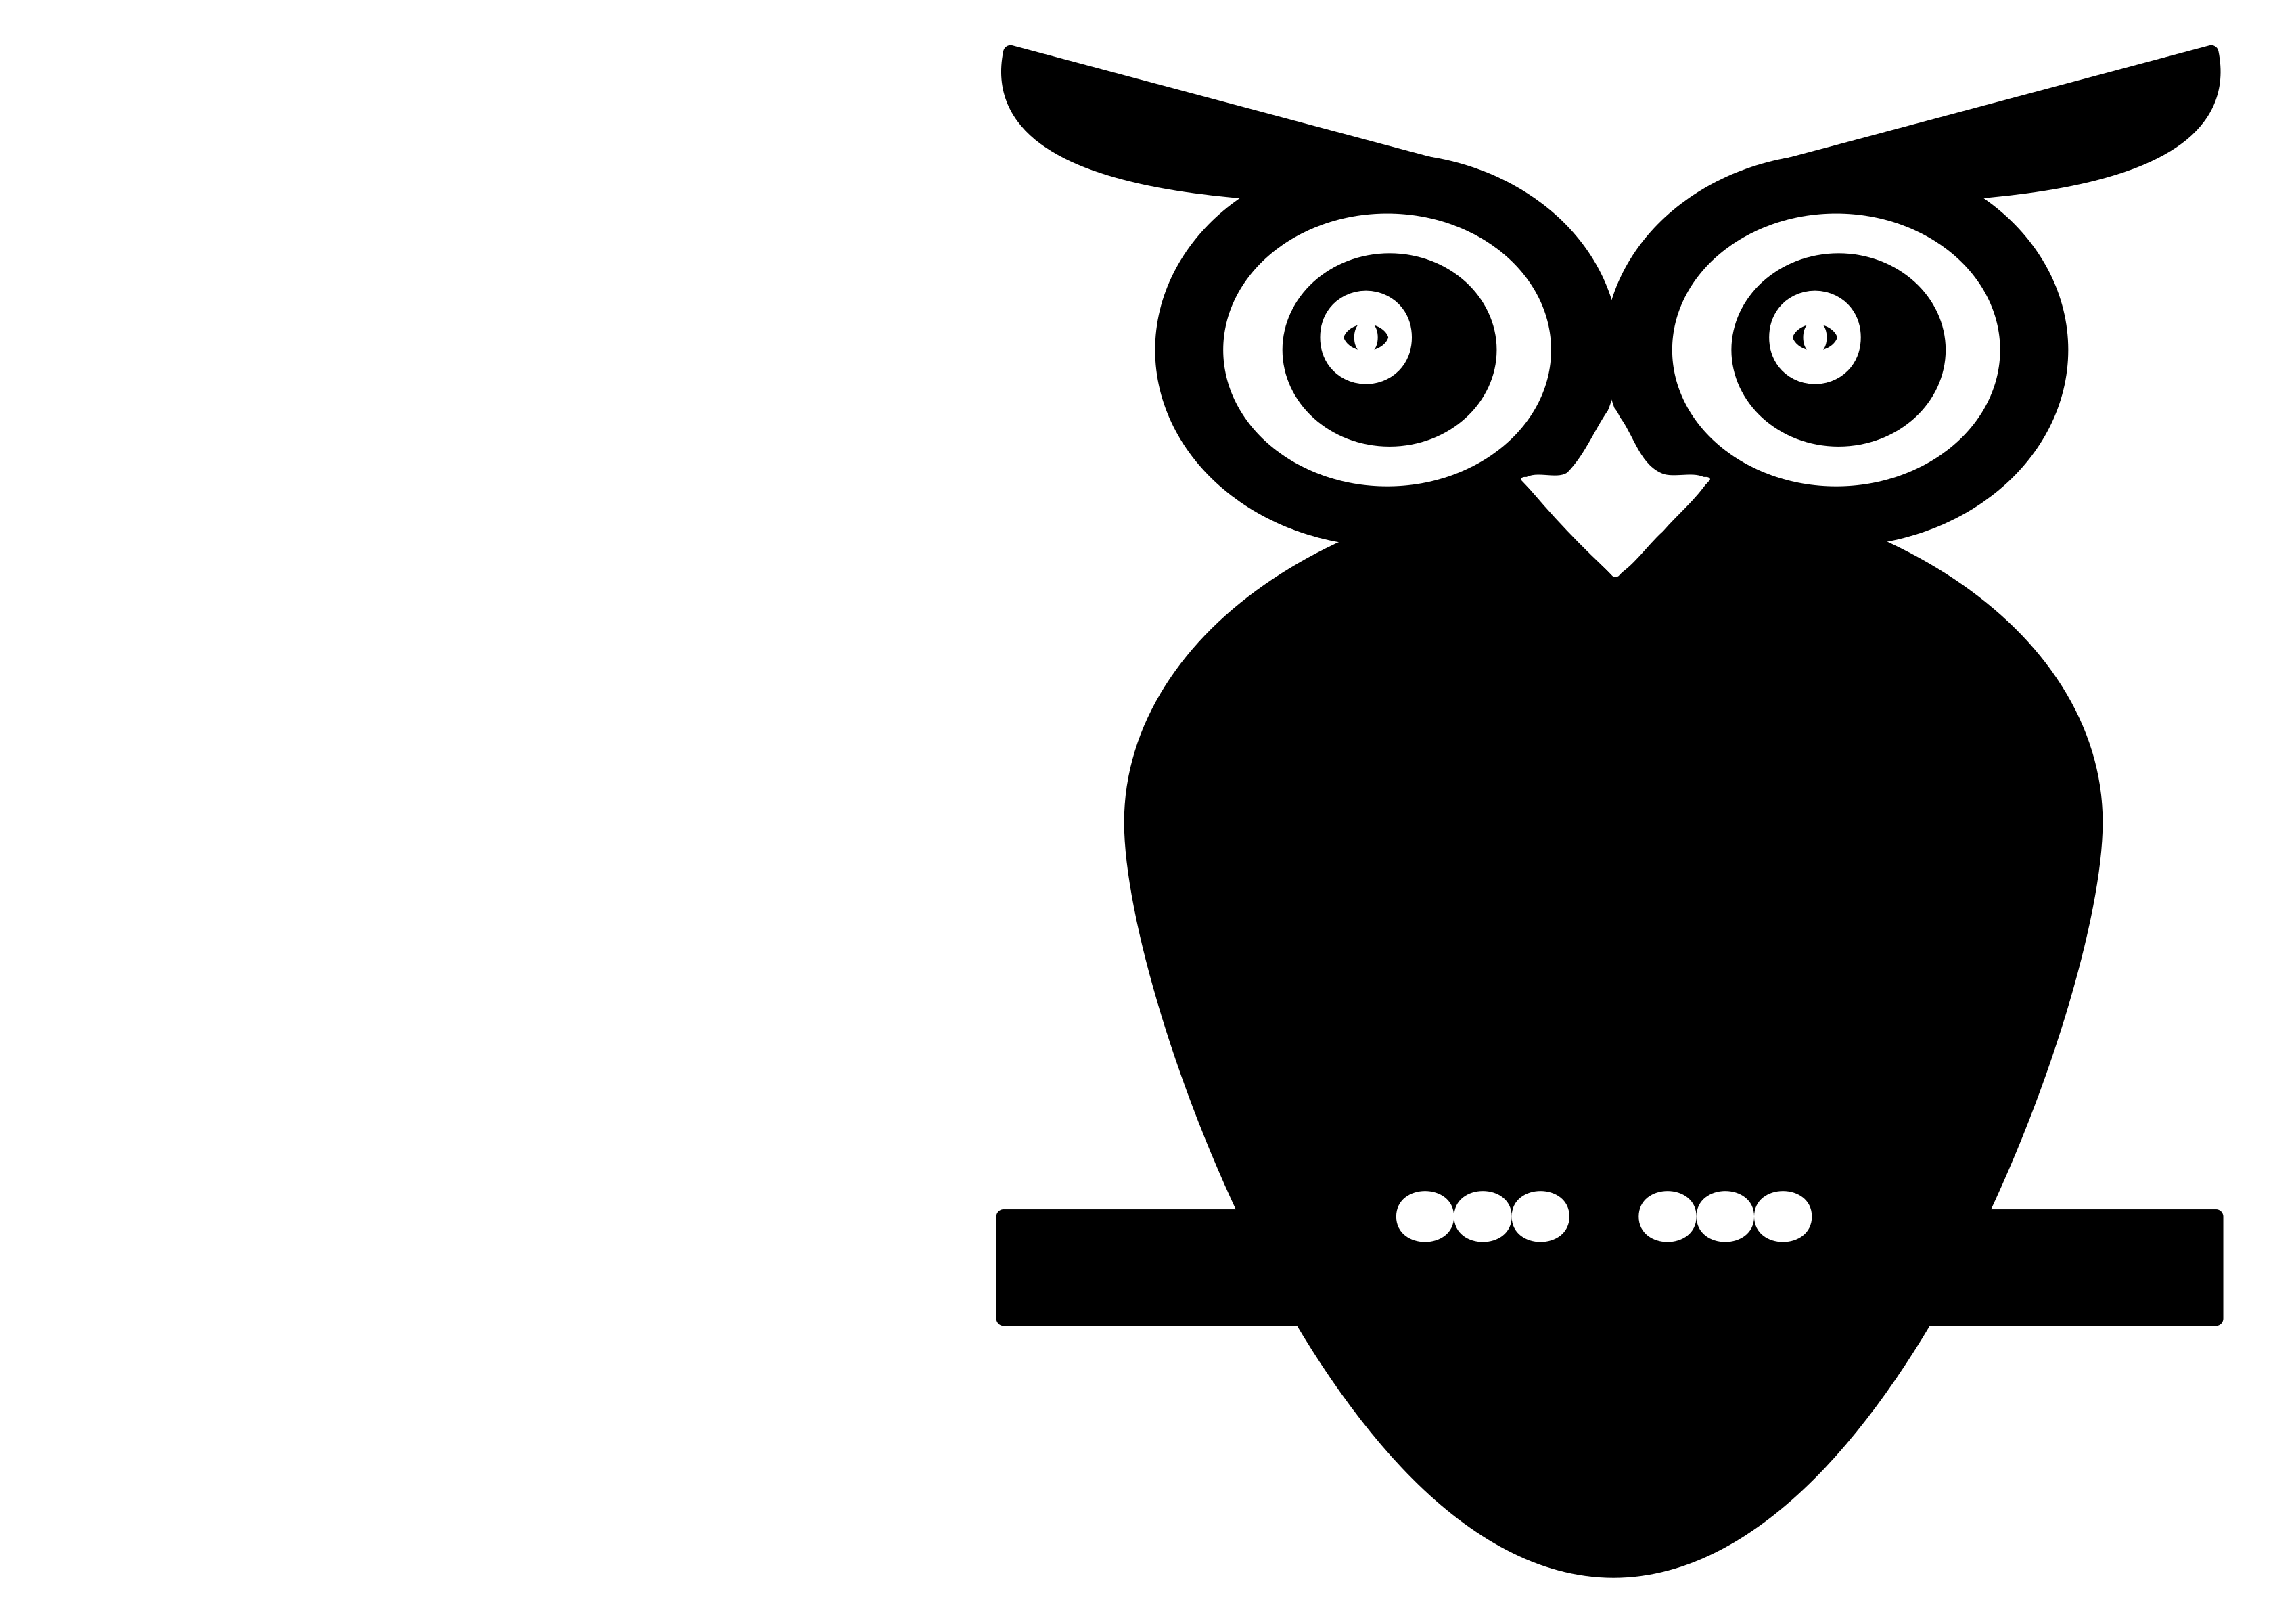 Clipart owl black and white. Big image png